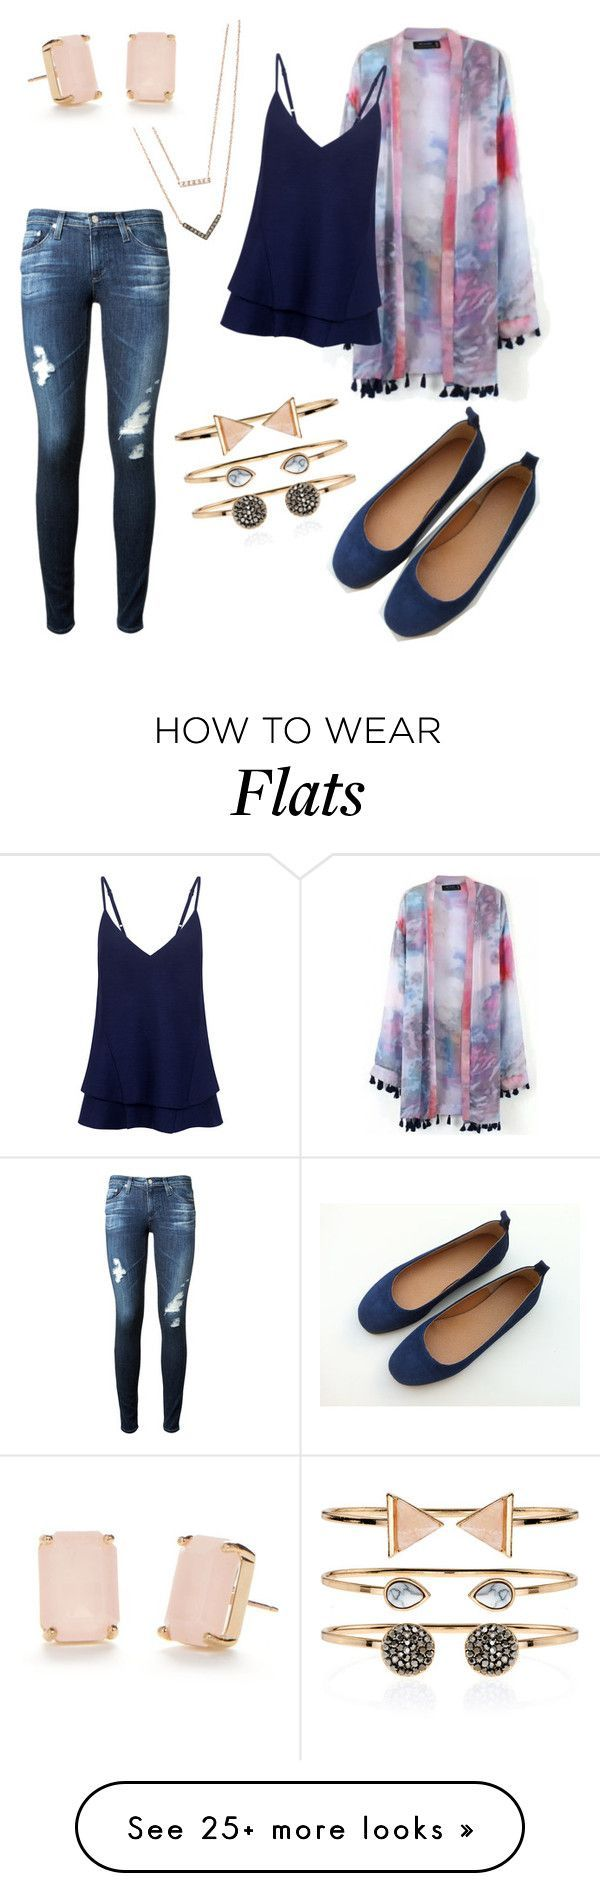 """""""Dreams"""" by lyricalbuddha on Polyvore featuring Michael Kors, C/MEO COLLECTIVE, AG Adriano Goldschmied, Accessorize and Kate Spade"""